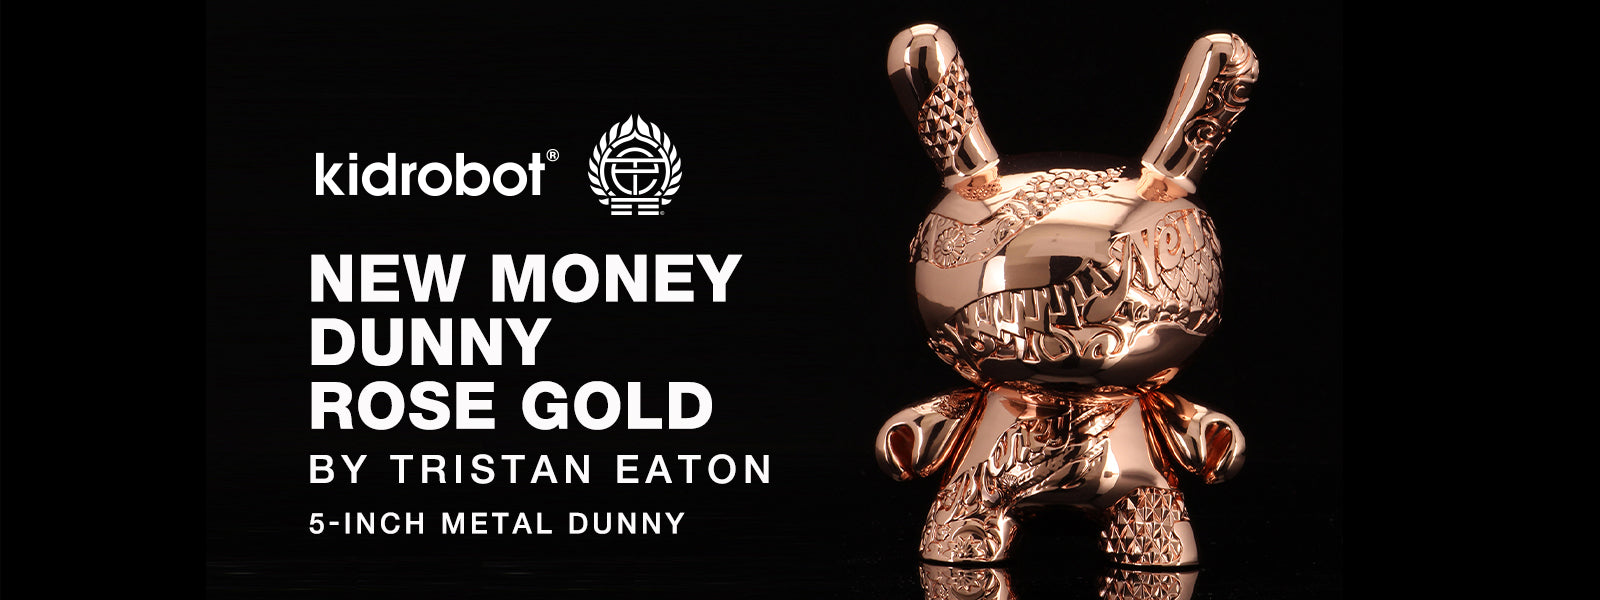 "Kidrobot New Money 5"" Metal Dunny by Tristan Eaton - Rose Gold Edition"